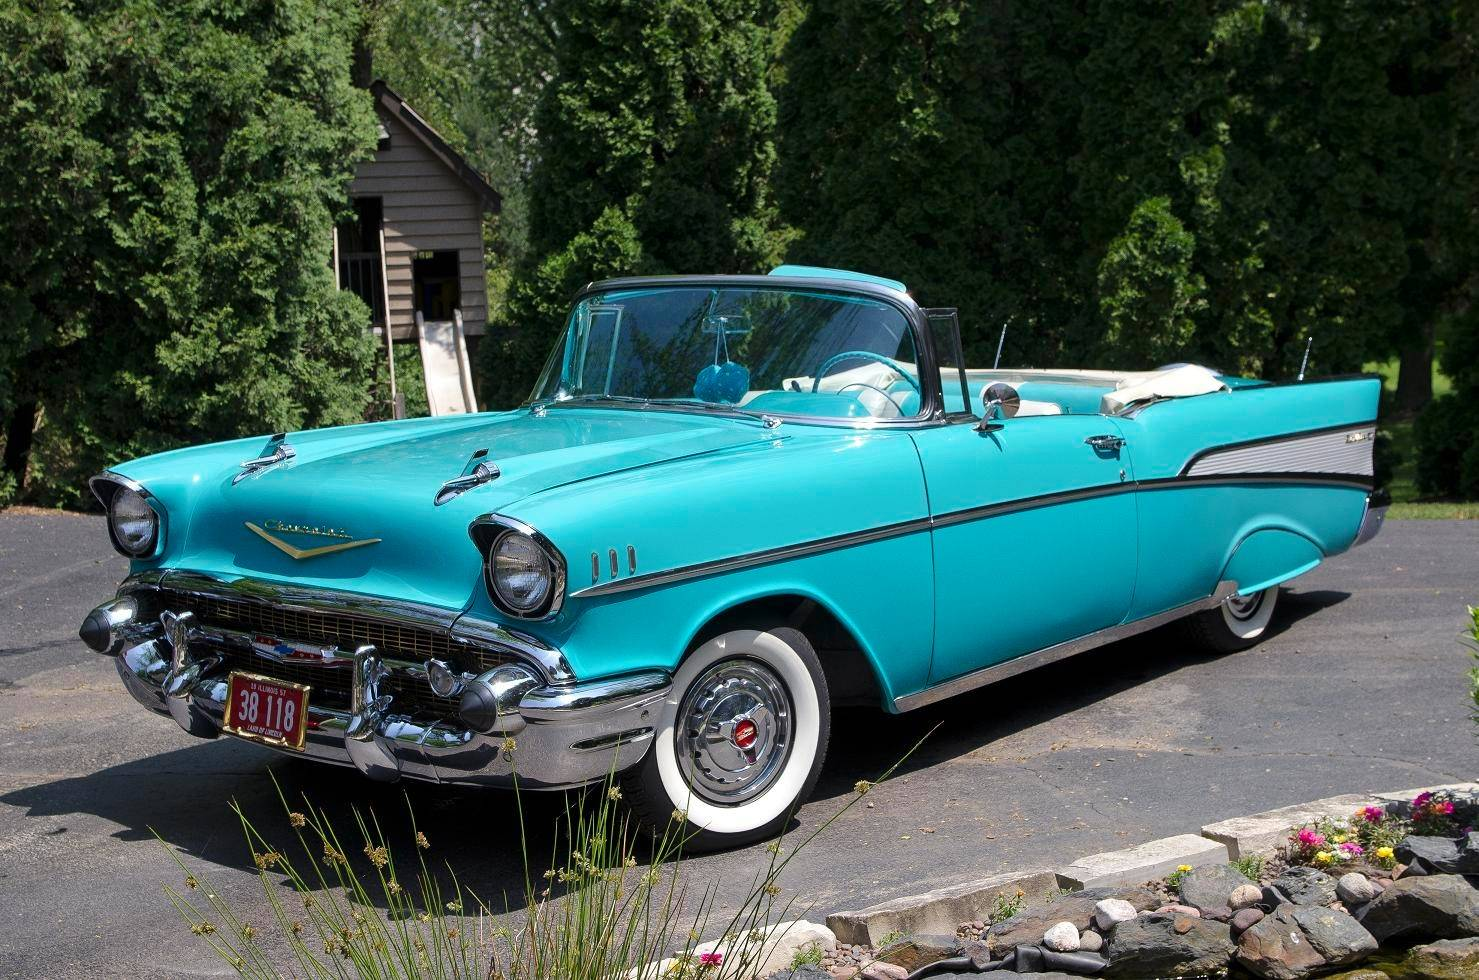 1957 Chevrolet Bel Air, Rich & Nancy Burke, Inverness